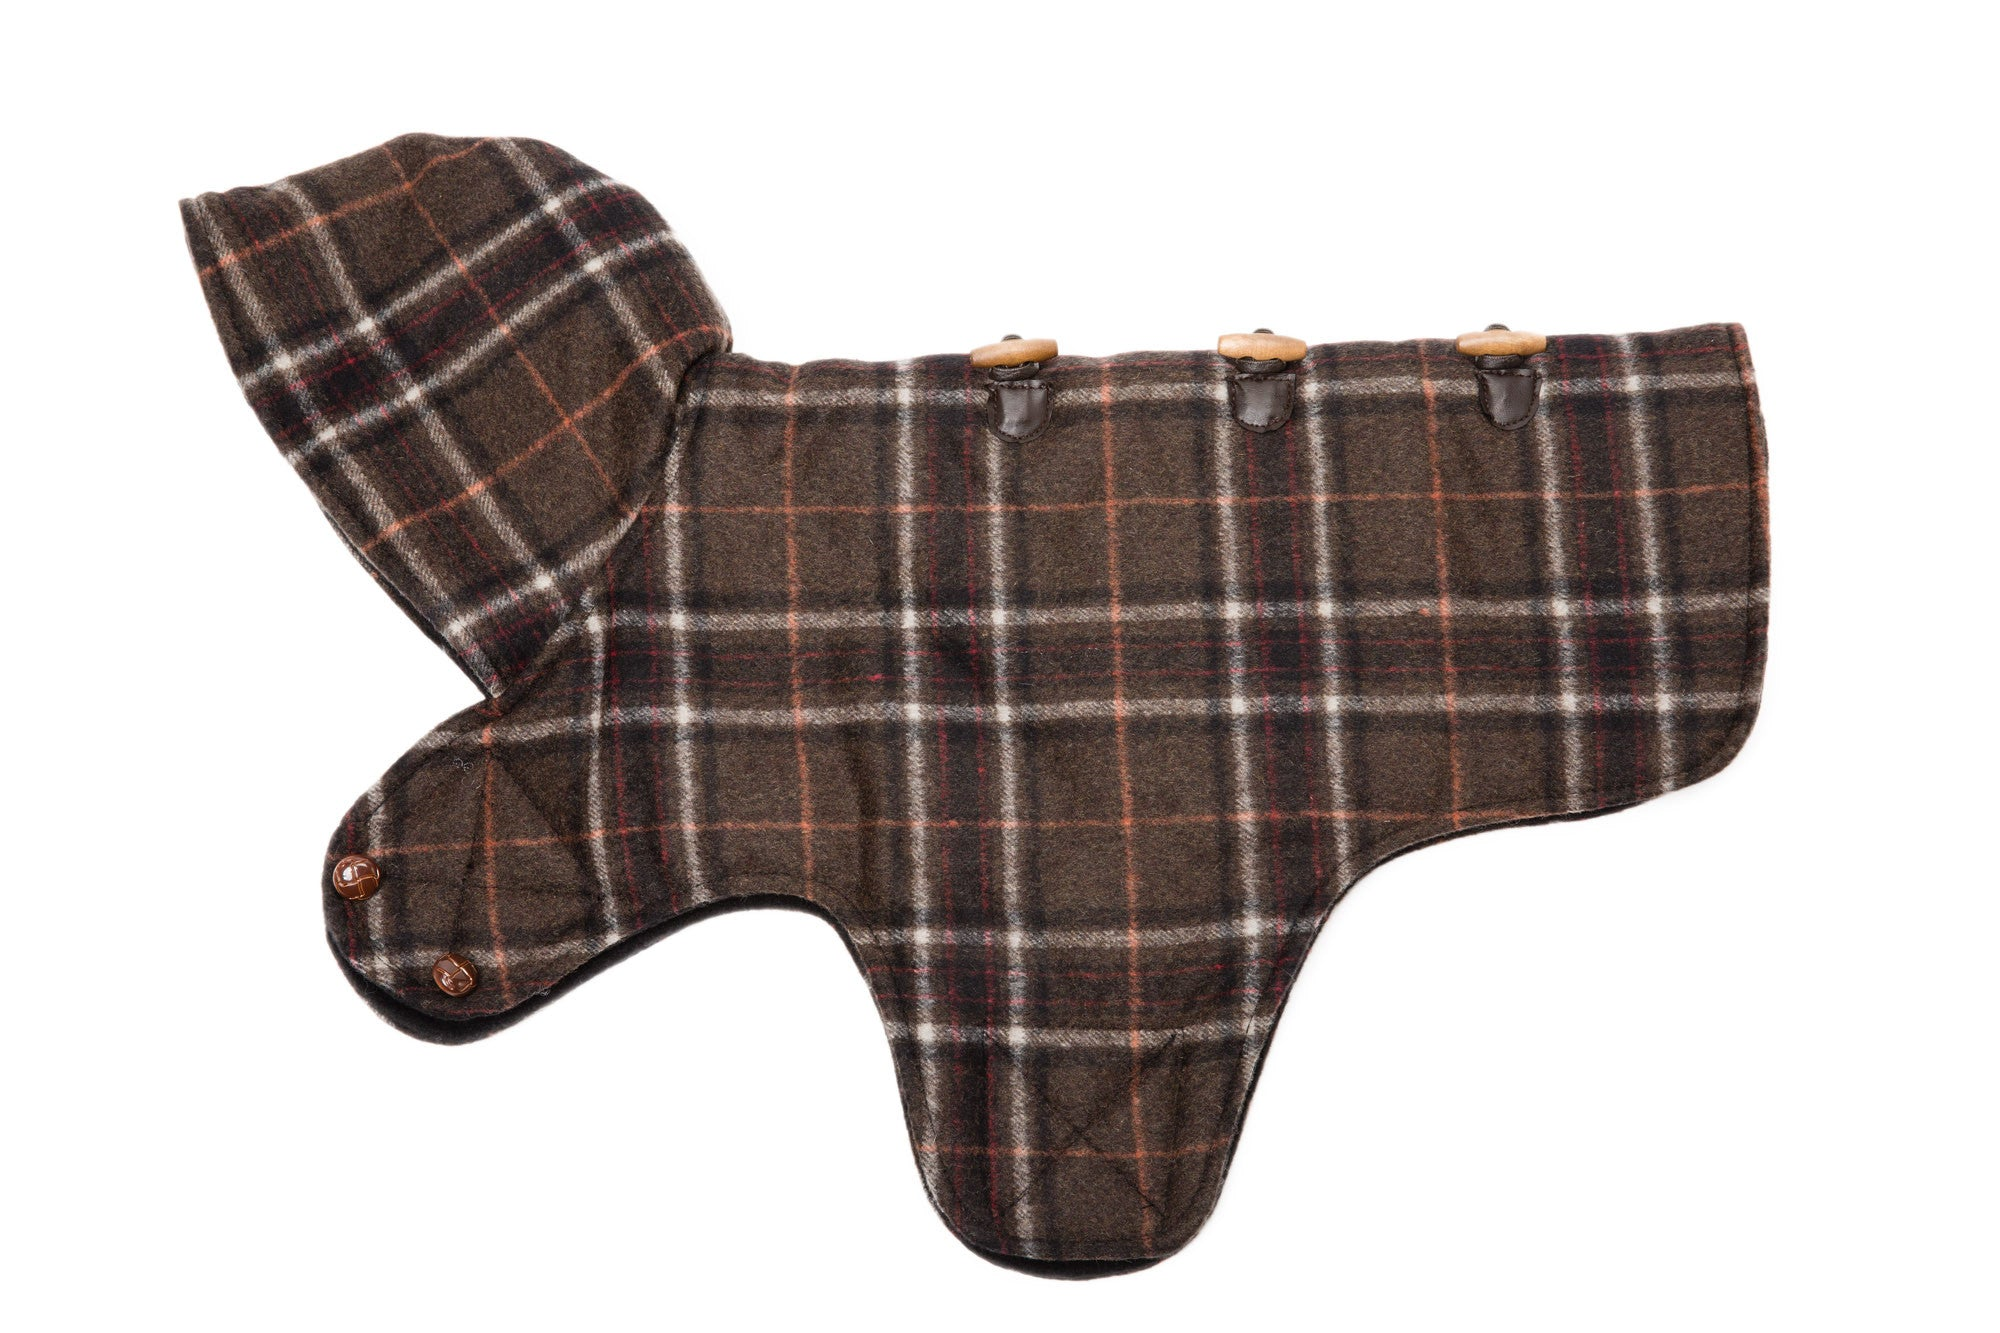 Dog Coat - Hooded Toggle, Red, Brown Plaid Dog Coats